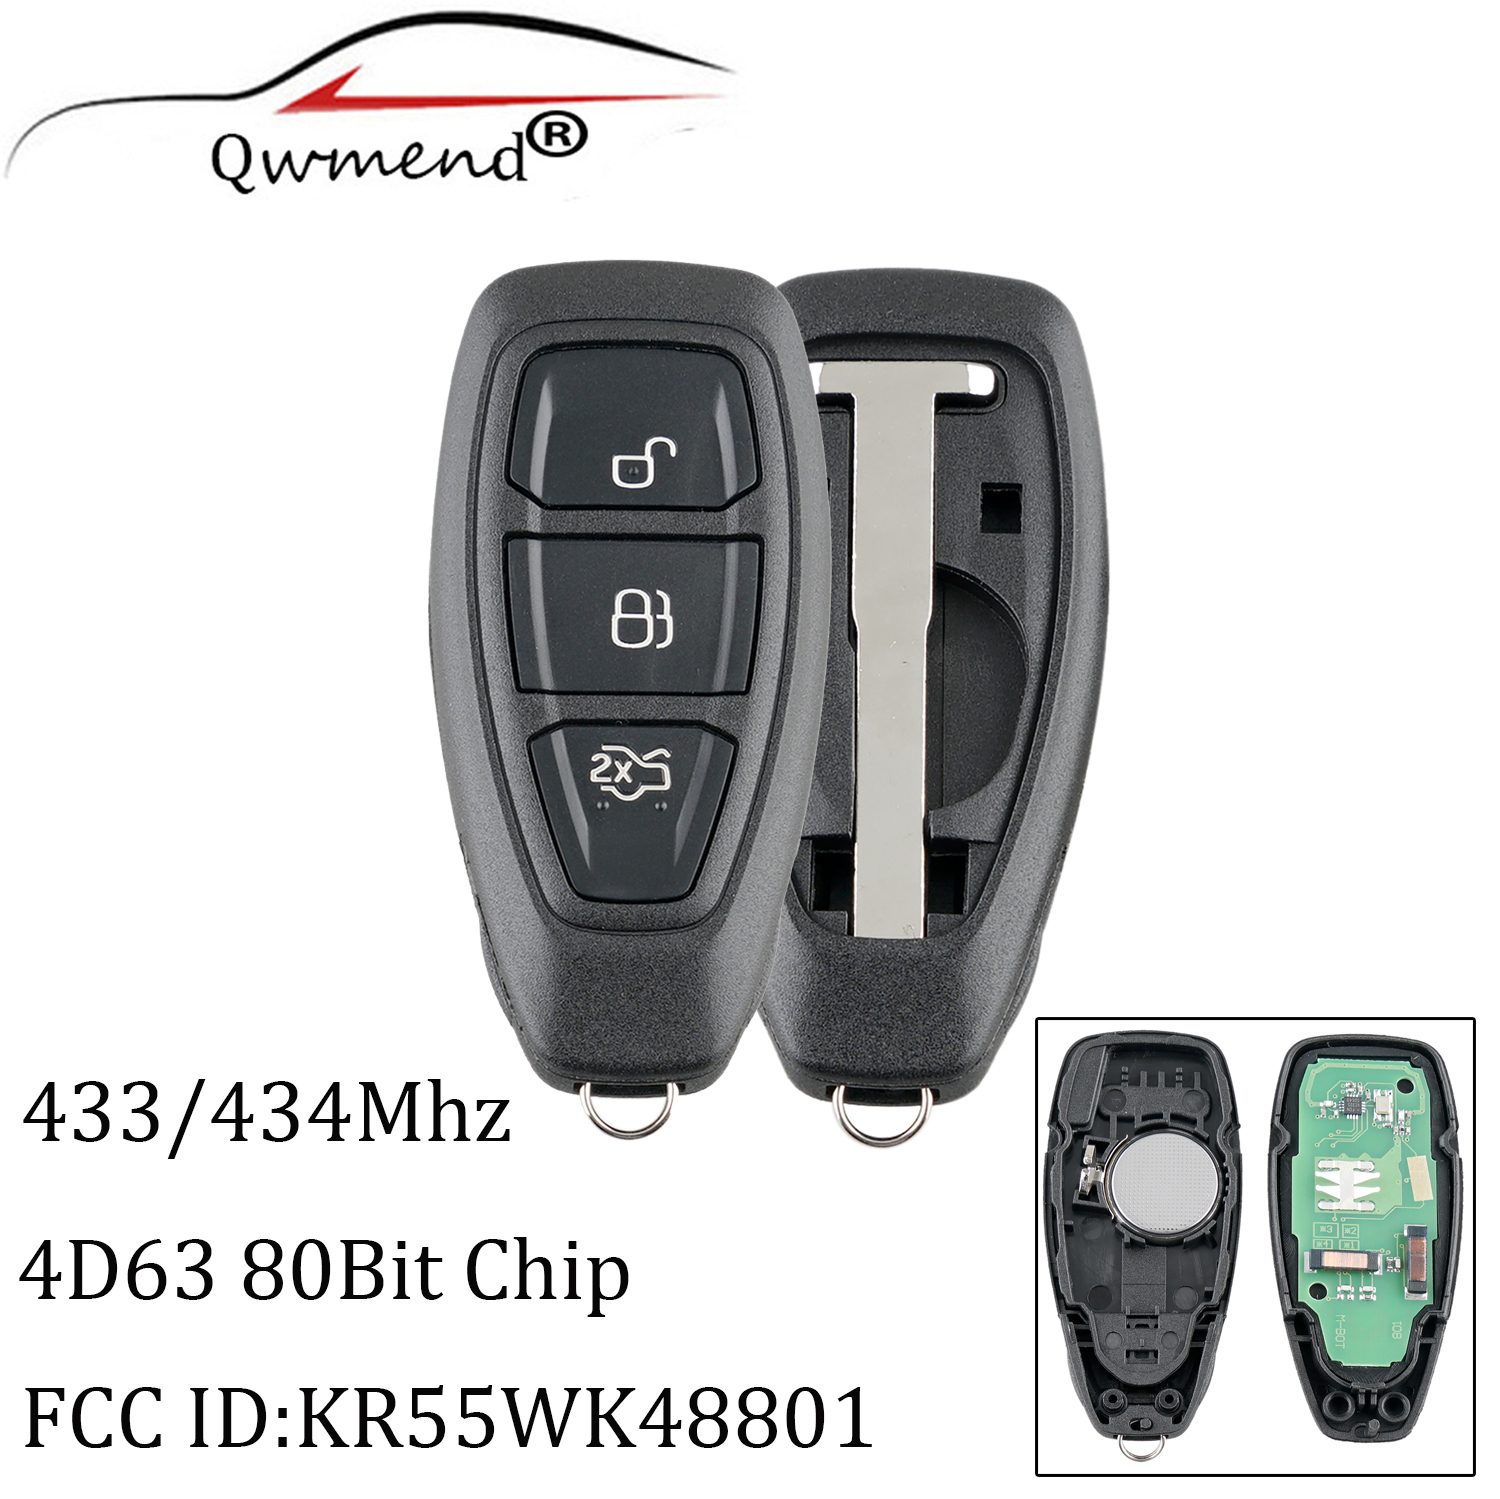 2pcs 3Buttons Smart Remote key For Ford KR55WK48801 434 433Mhz For Ford Focus Fiesta Kuga 2011